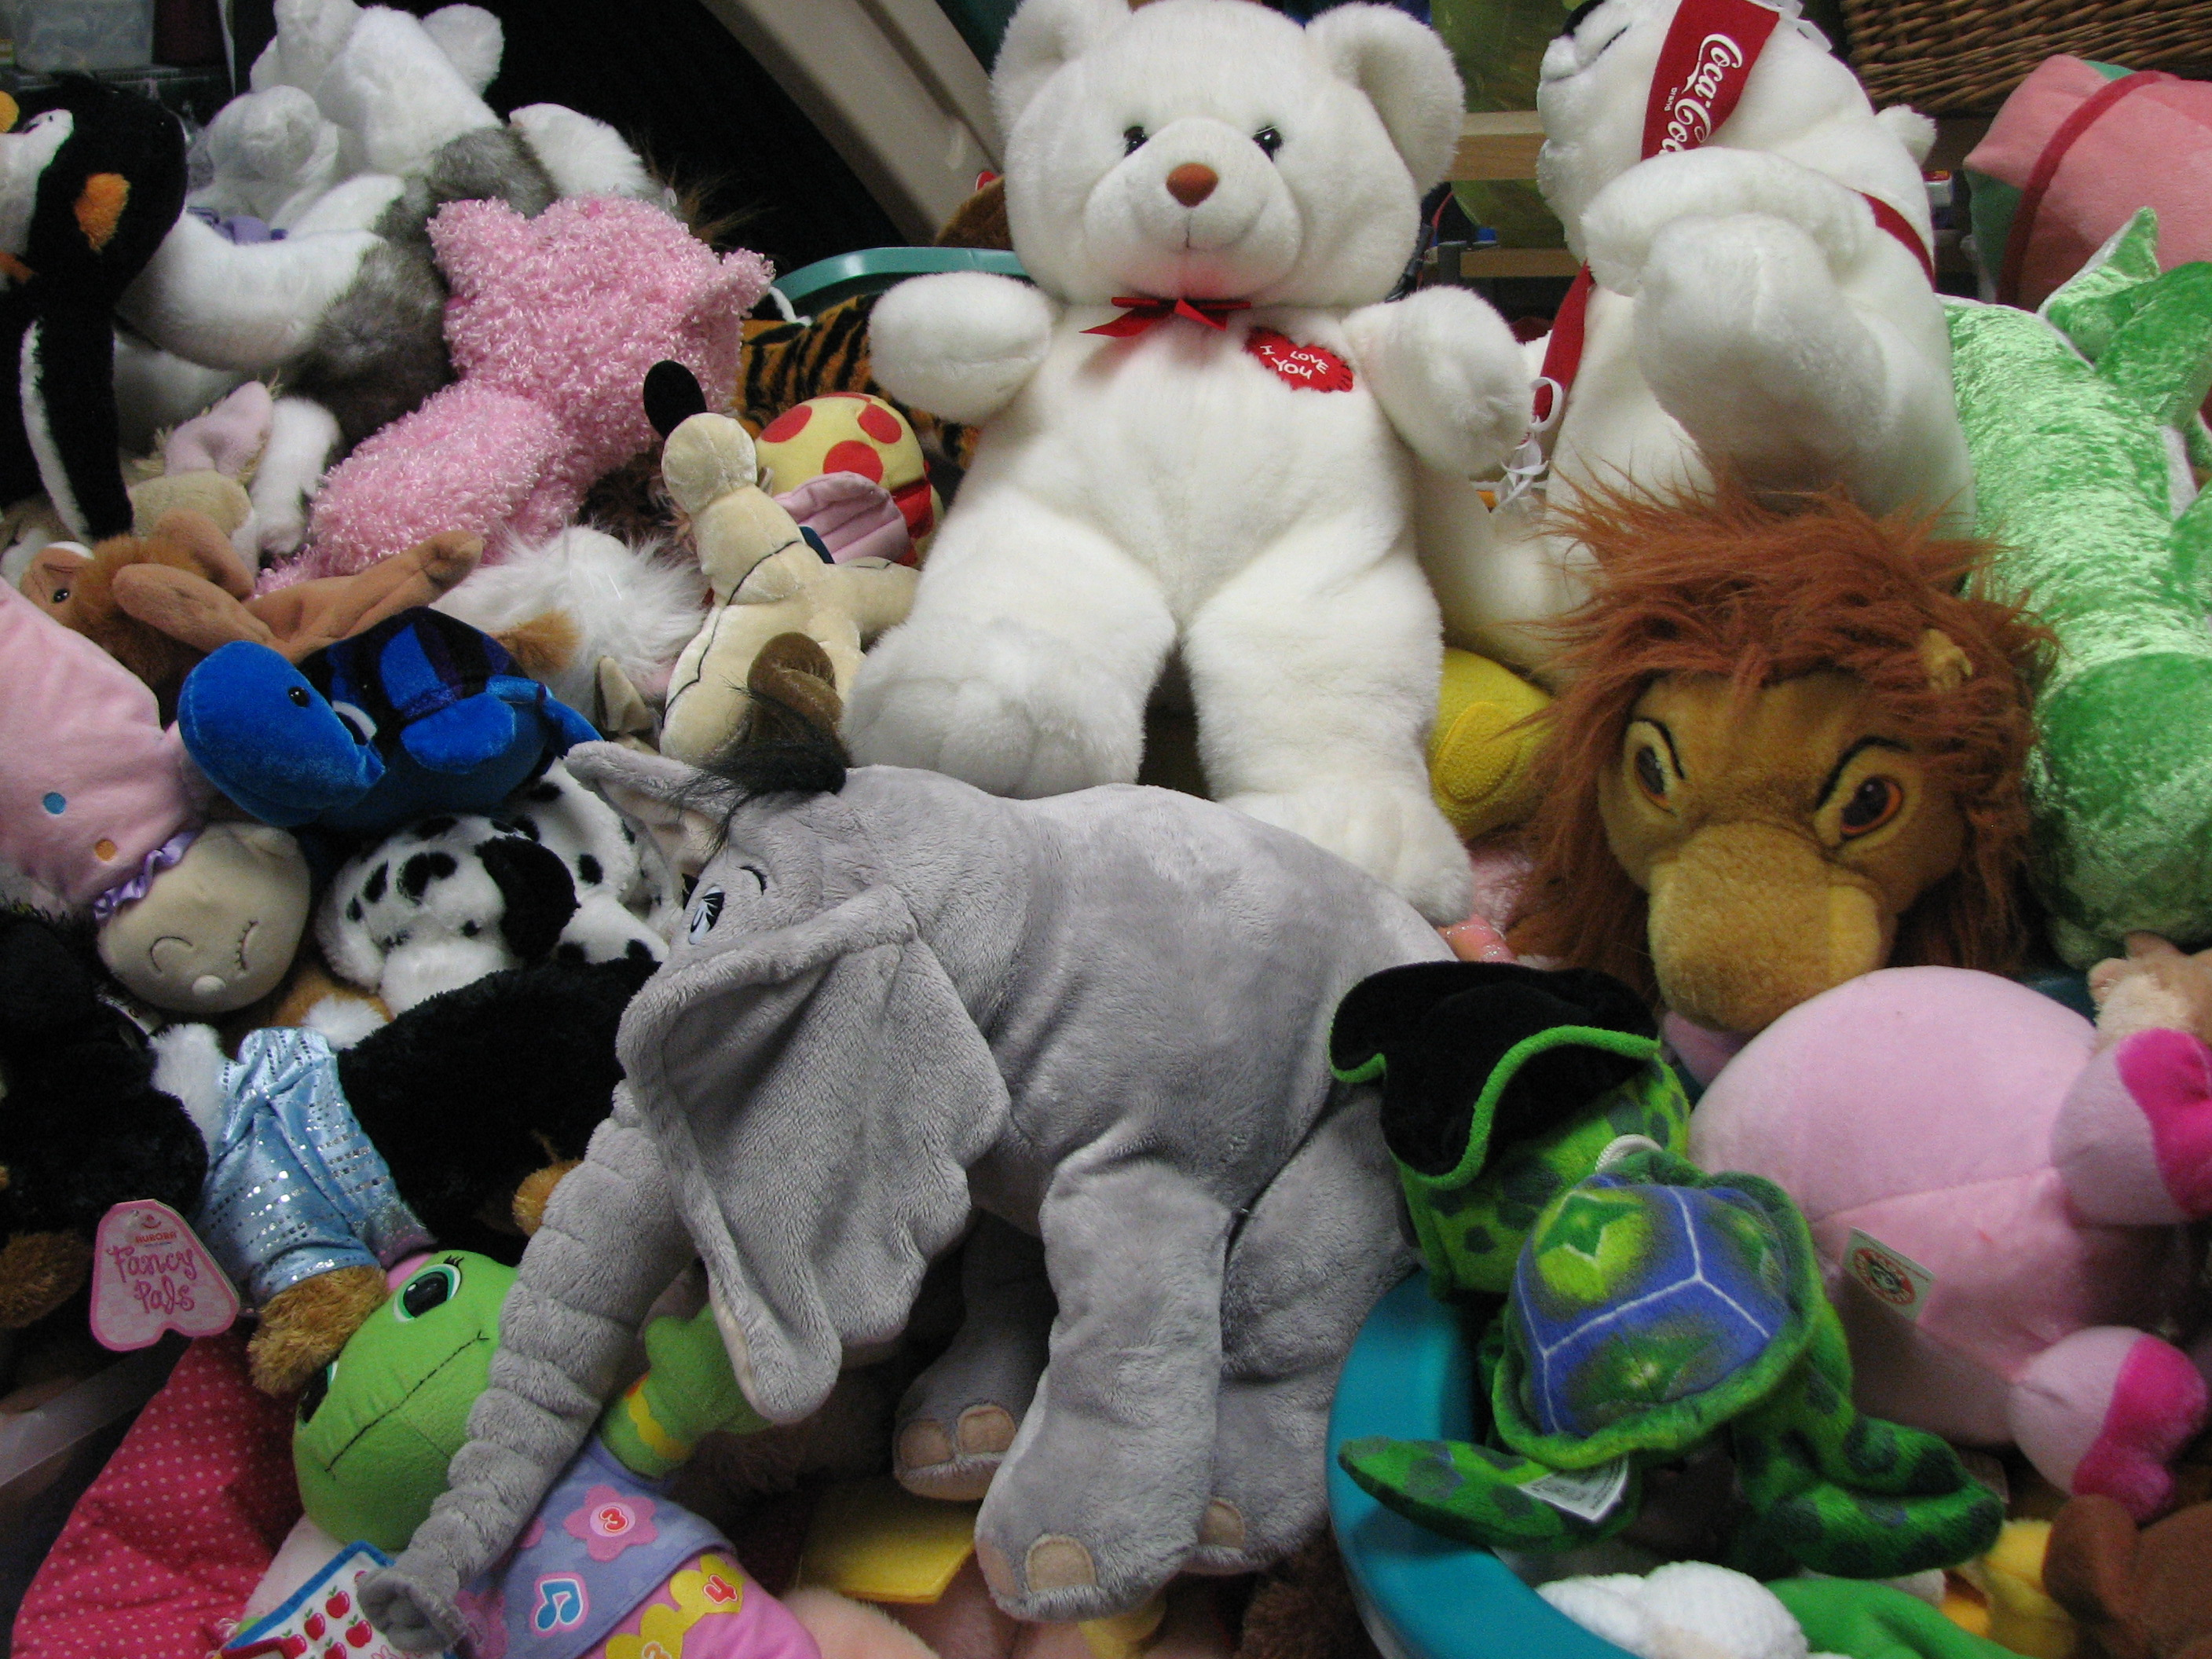 Stuffed Animal Toys : The march of stuffed animals powered by robots